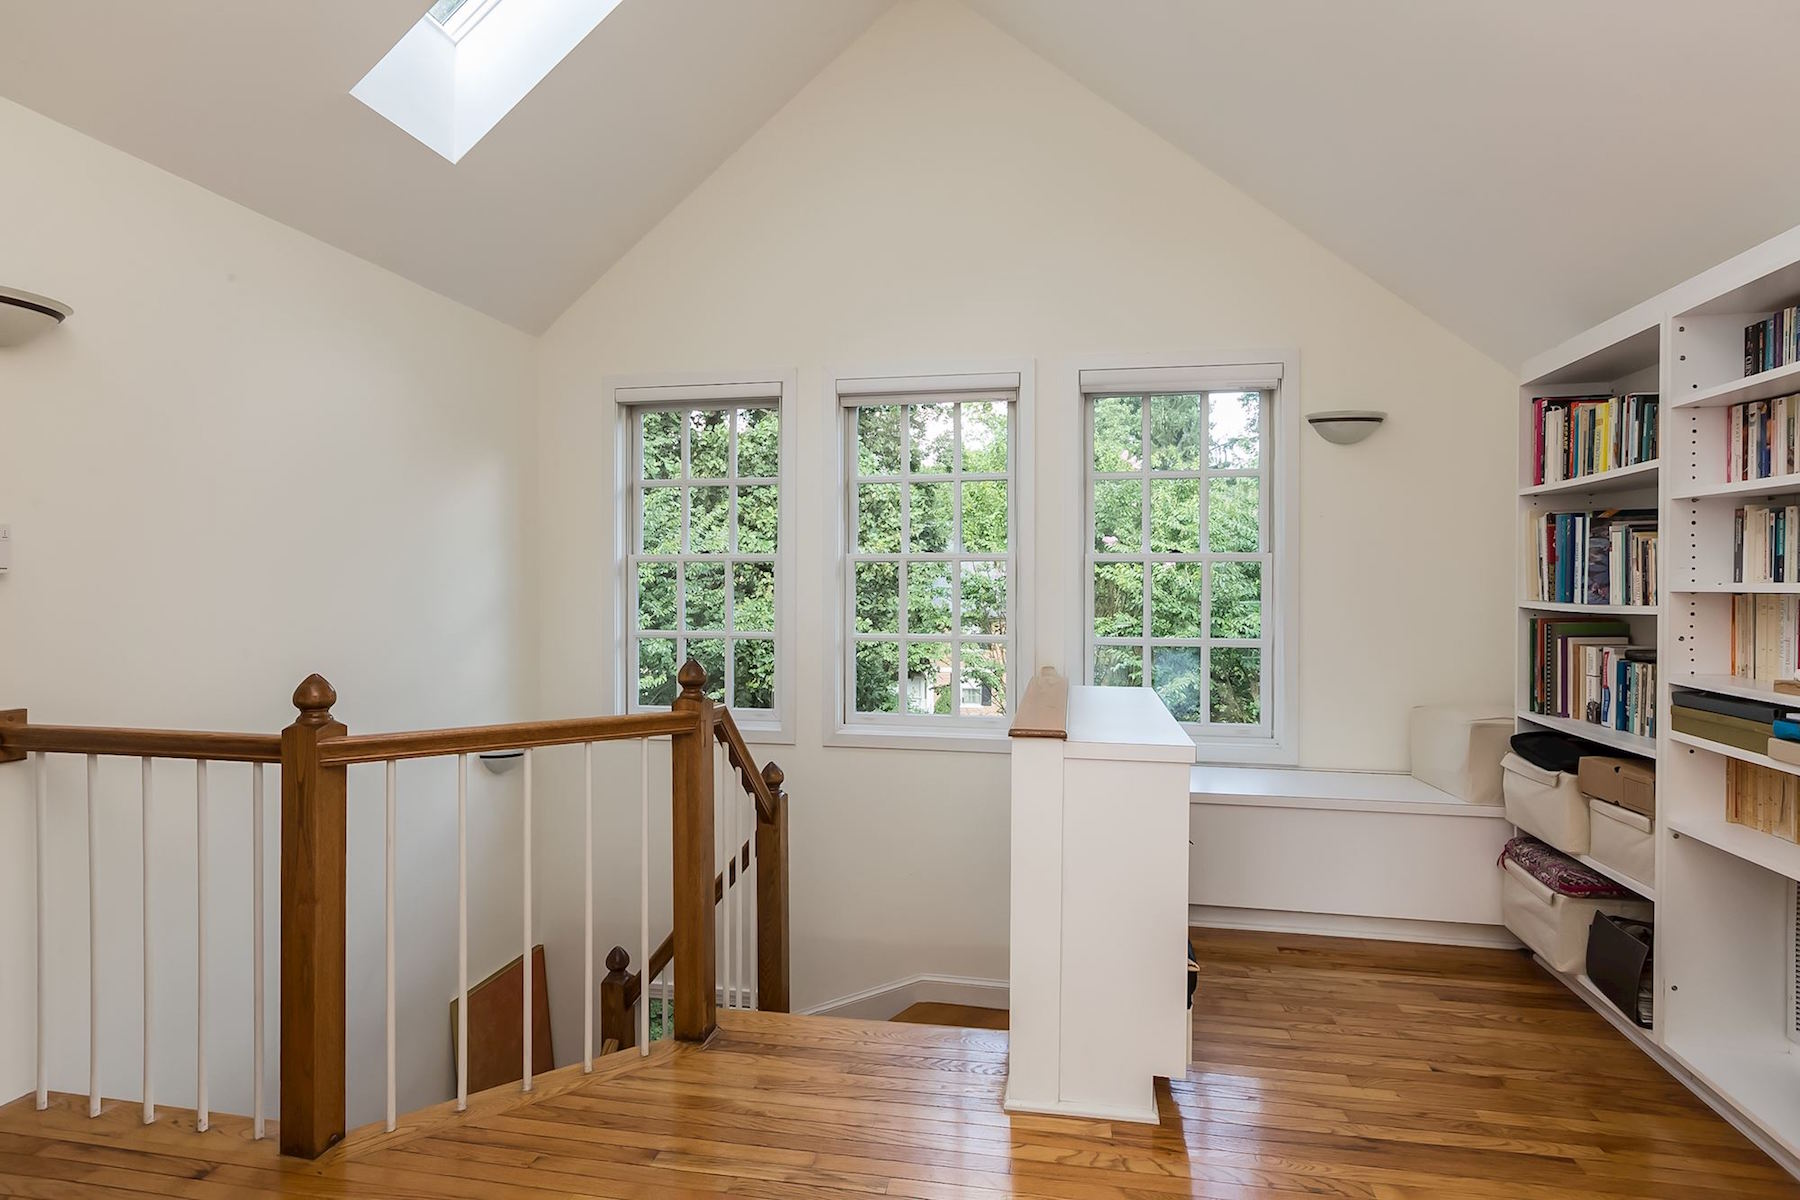 Additional photo for property listing at 5153 Tilden Street 5153 Tilden Street Nw Washington, コロンビア特別区 20016 アメリカ合衆国